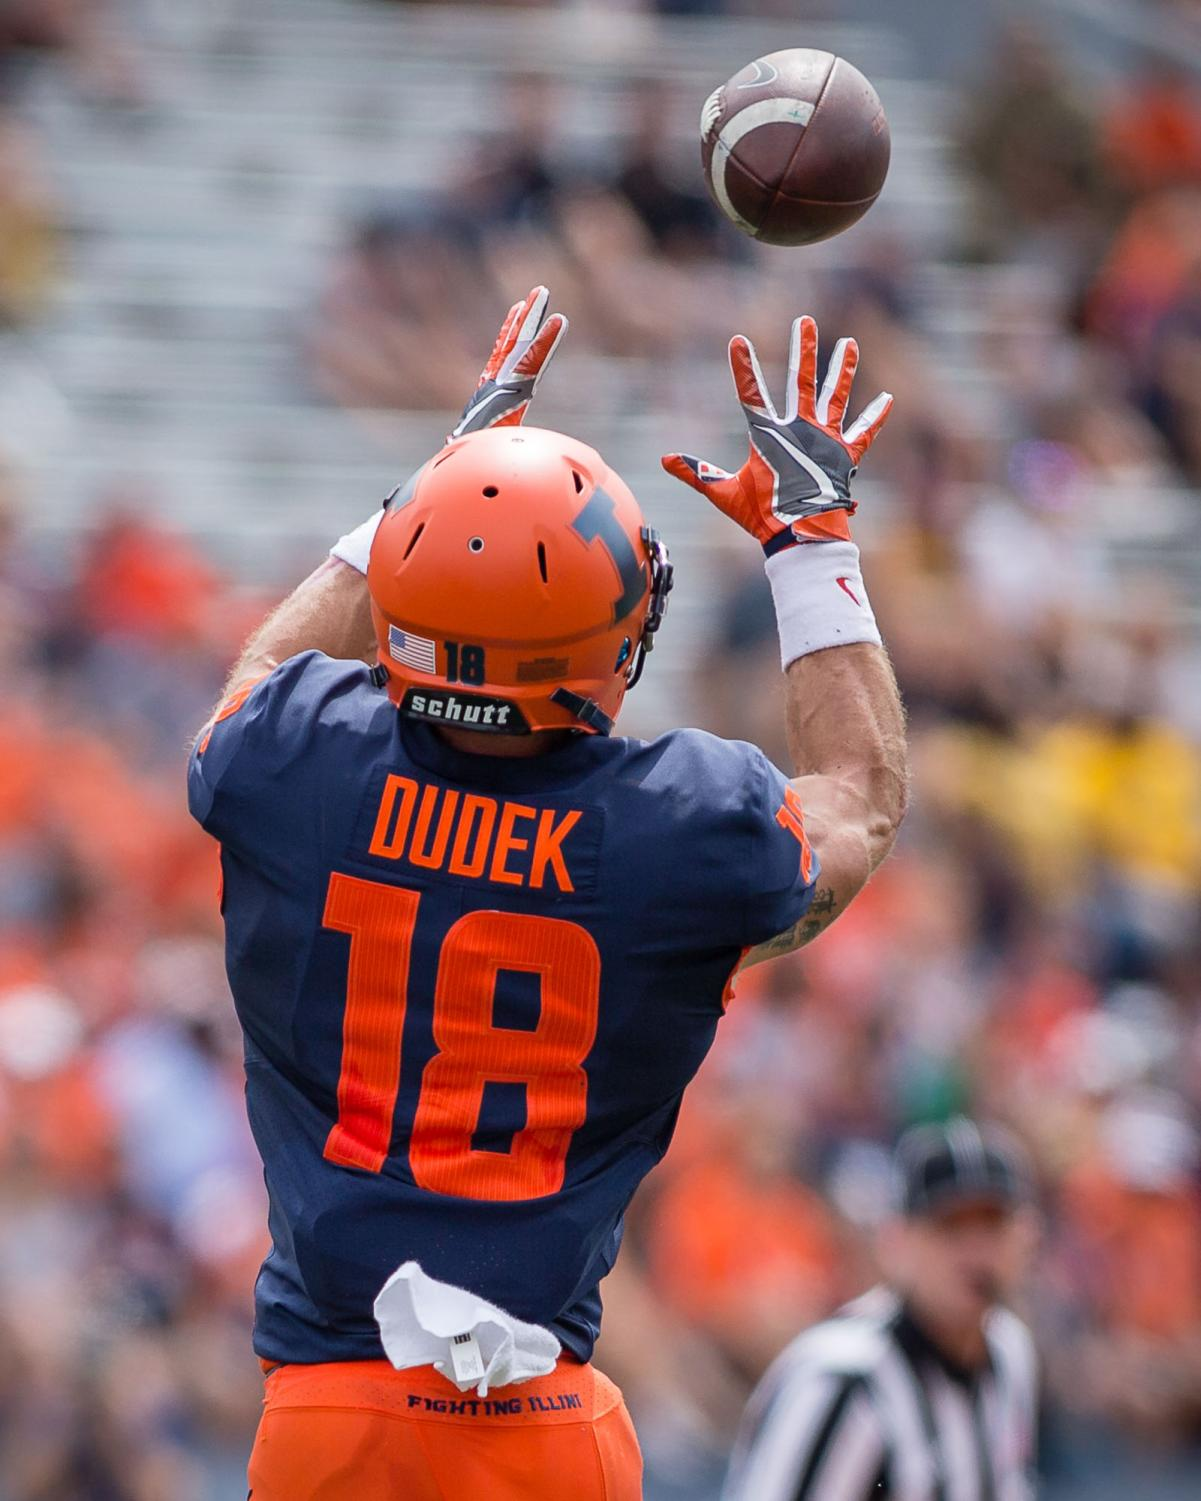 Illinois wide receiver Mike Dudek (18) leaps up to make a catch during the game against Kent State at Memorial Stadium on Saturday, Sept. 1, 2018.